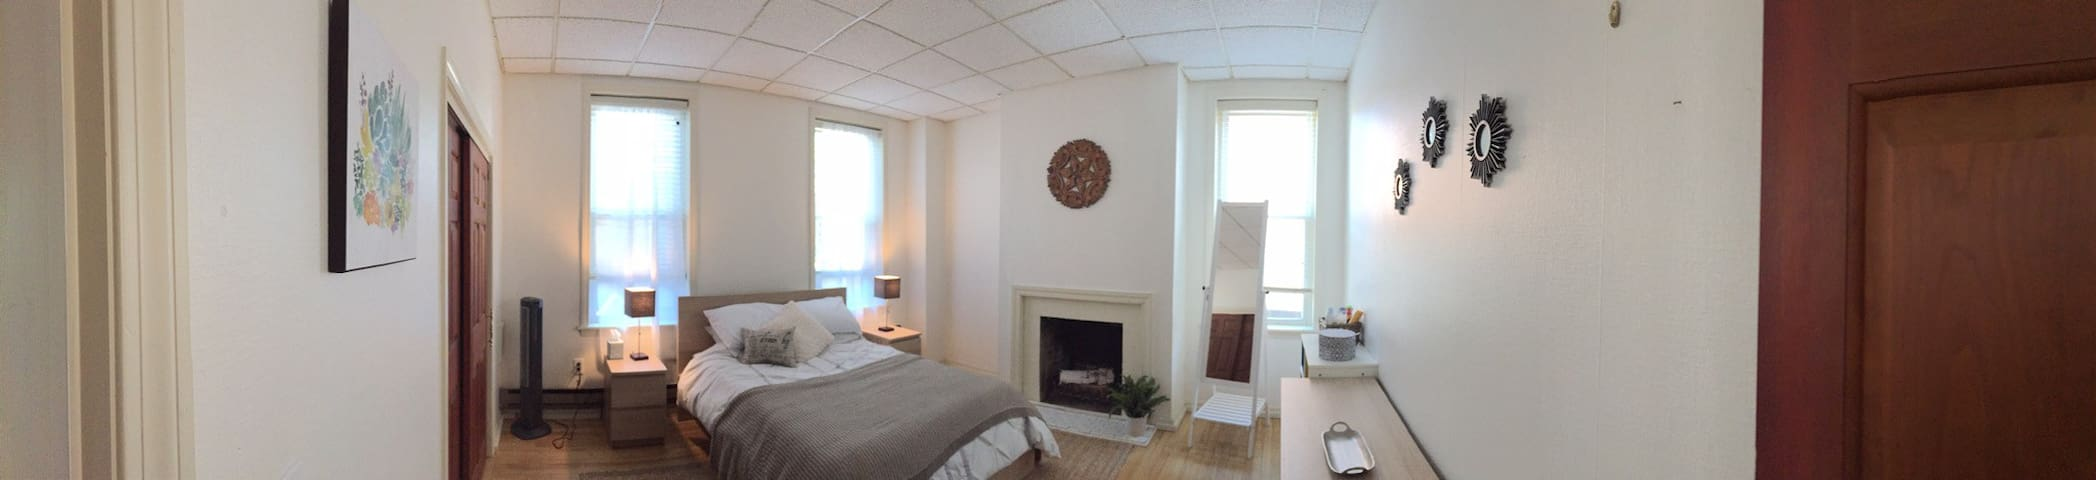 Downtown Apartment, Walk to Amherst College, UMASS - Amherst - Apartamento